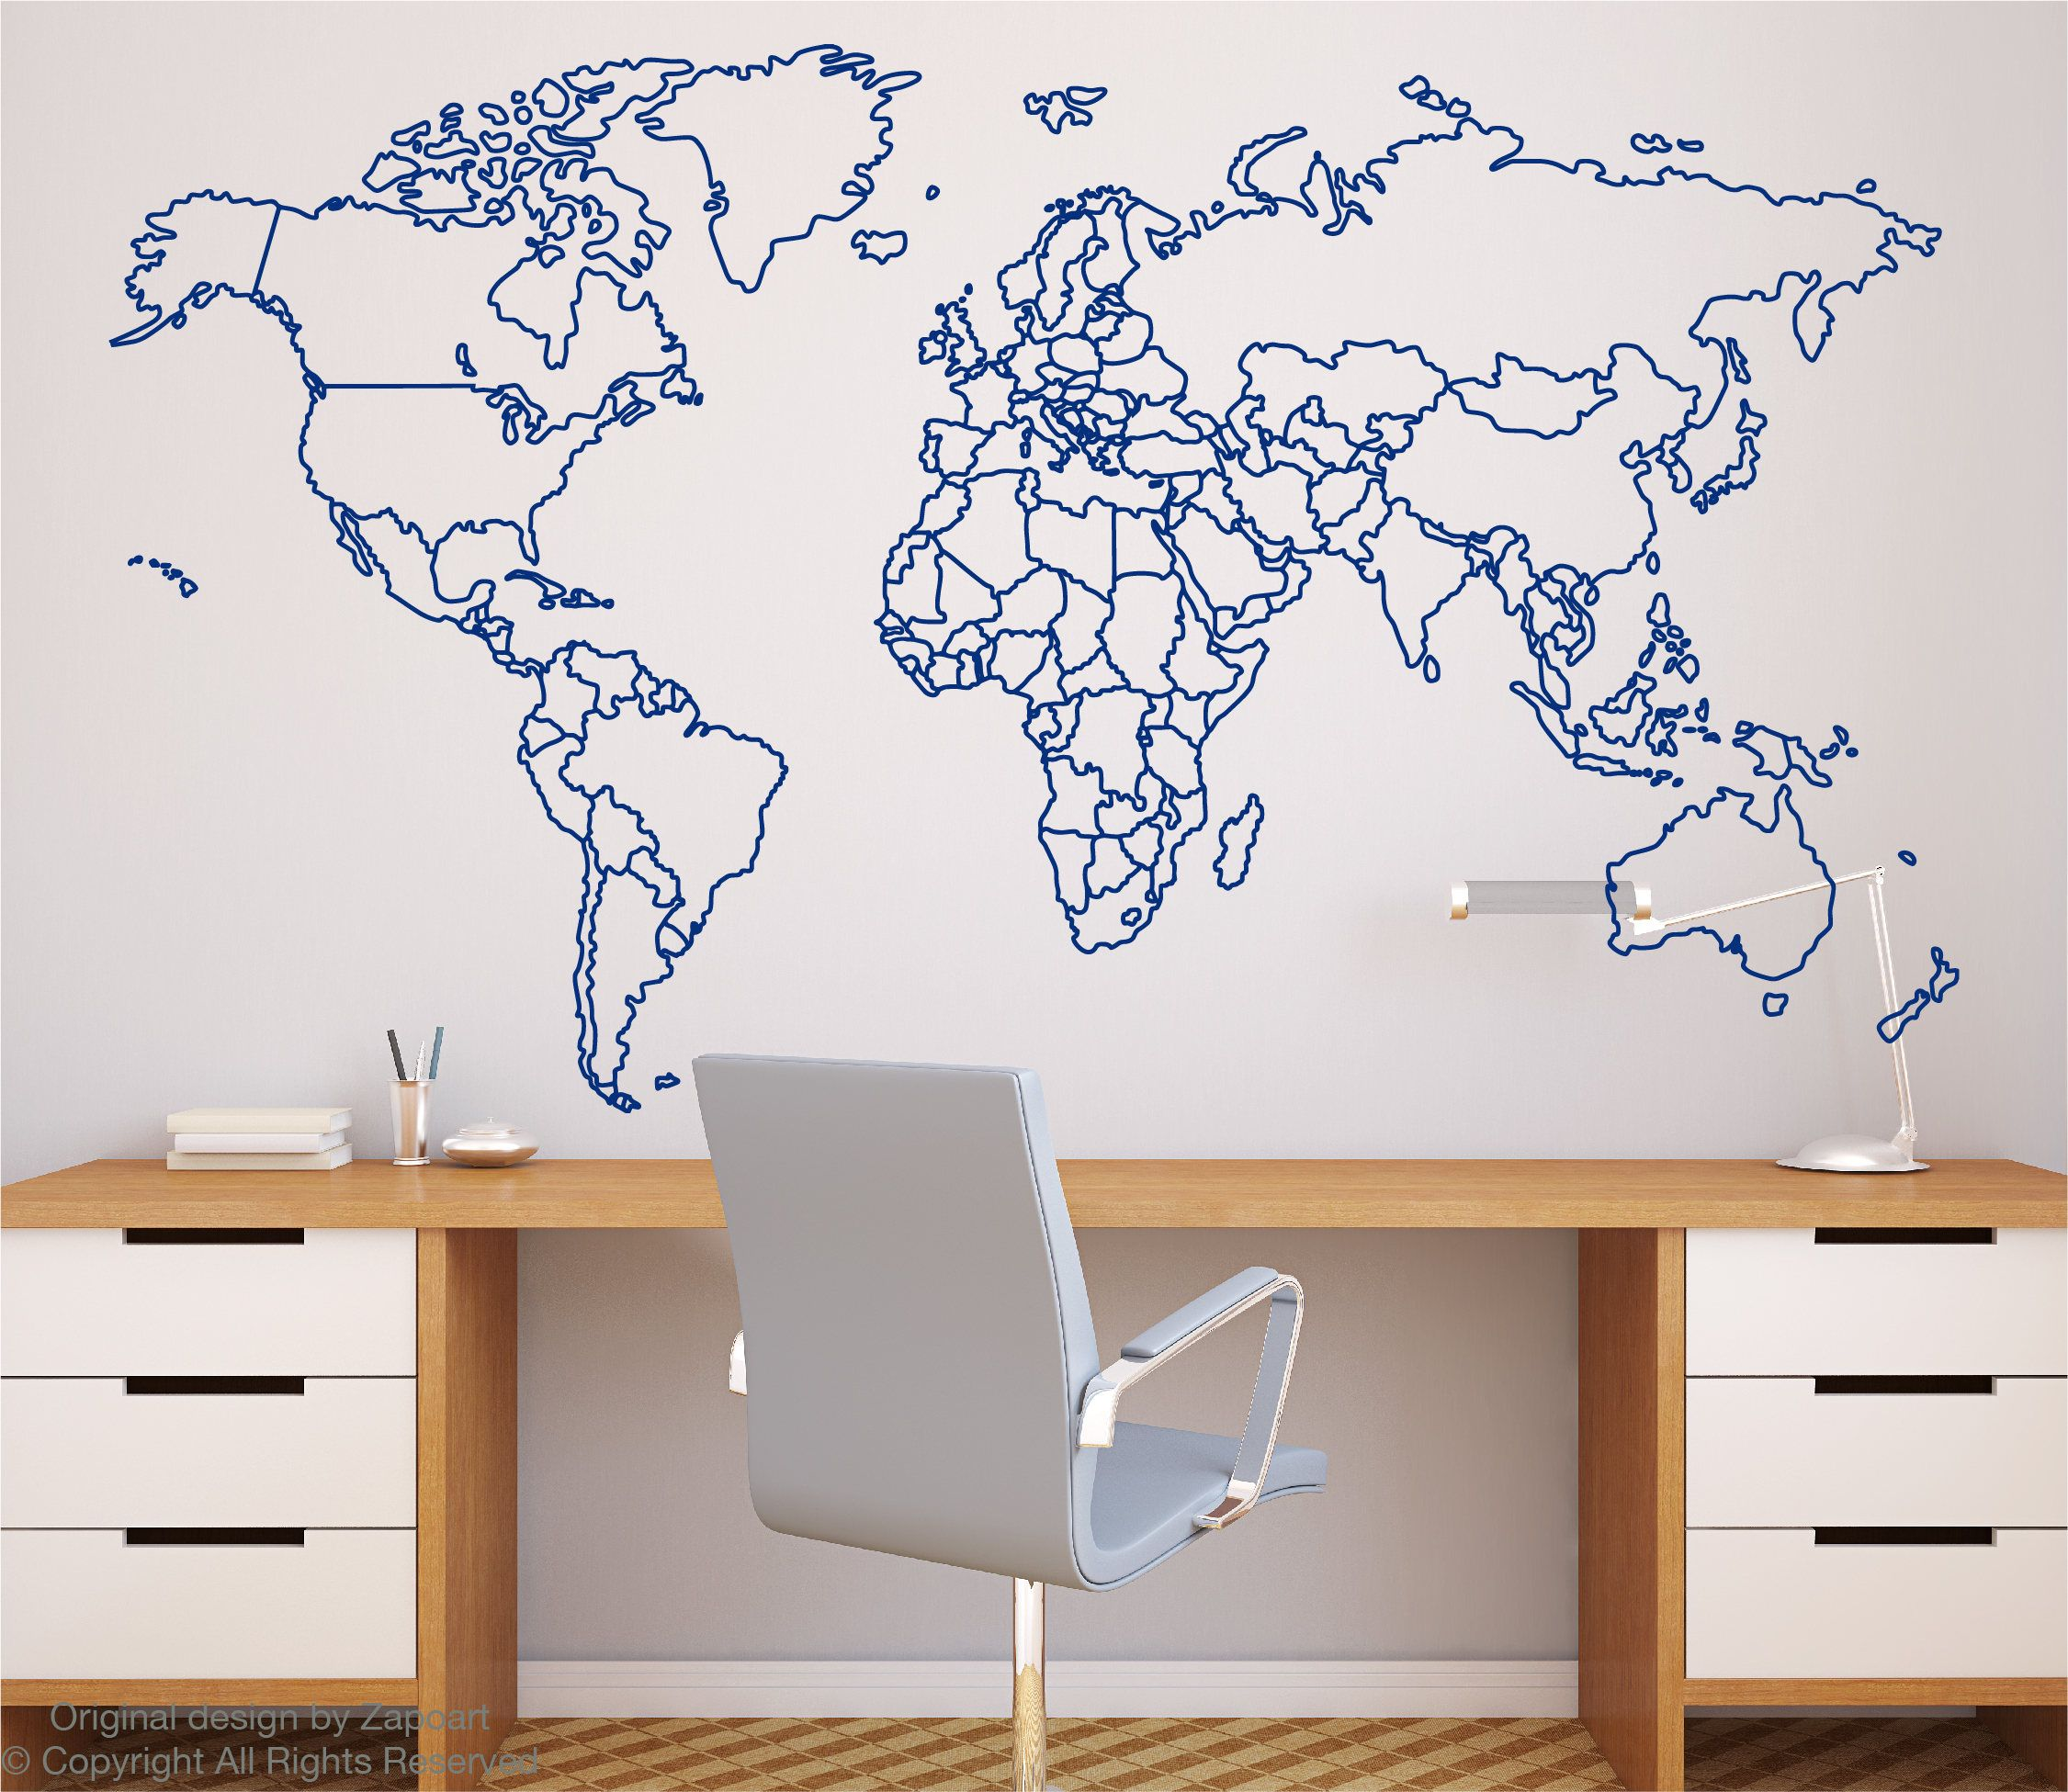 World map with countries borders outline wall decal by zapoart on world map with countries borders outline wall decal by zapoart on etsy gumiabroncs